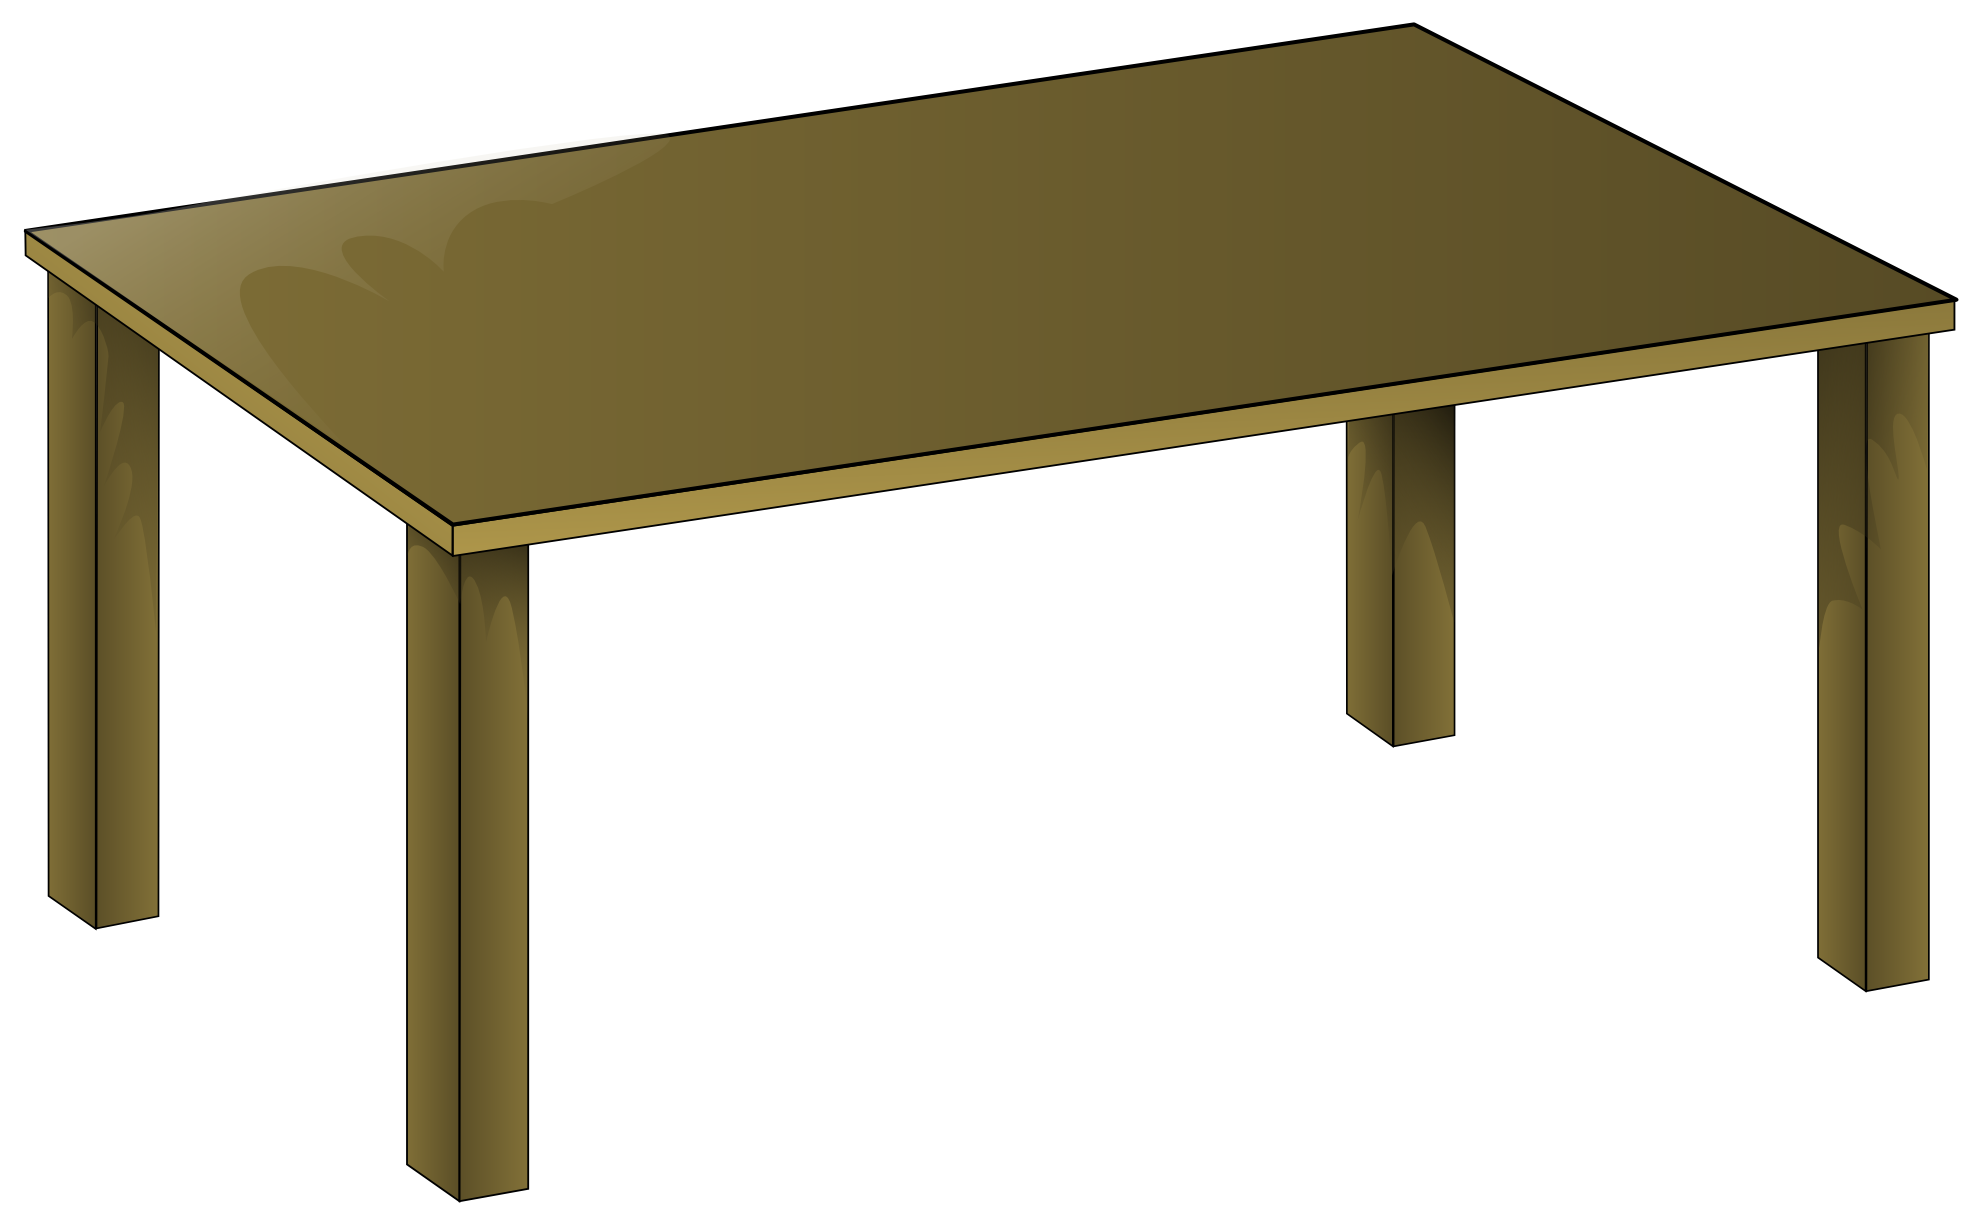 1979x1224 School Table Clip Art Round Table Clipart Kitchen Table And Chairs